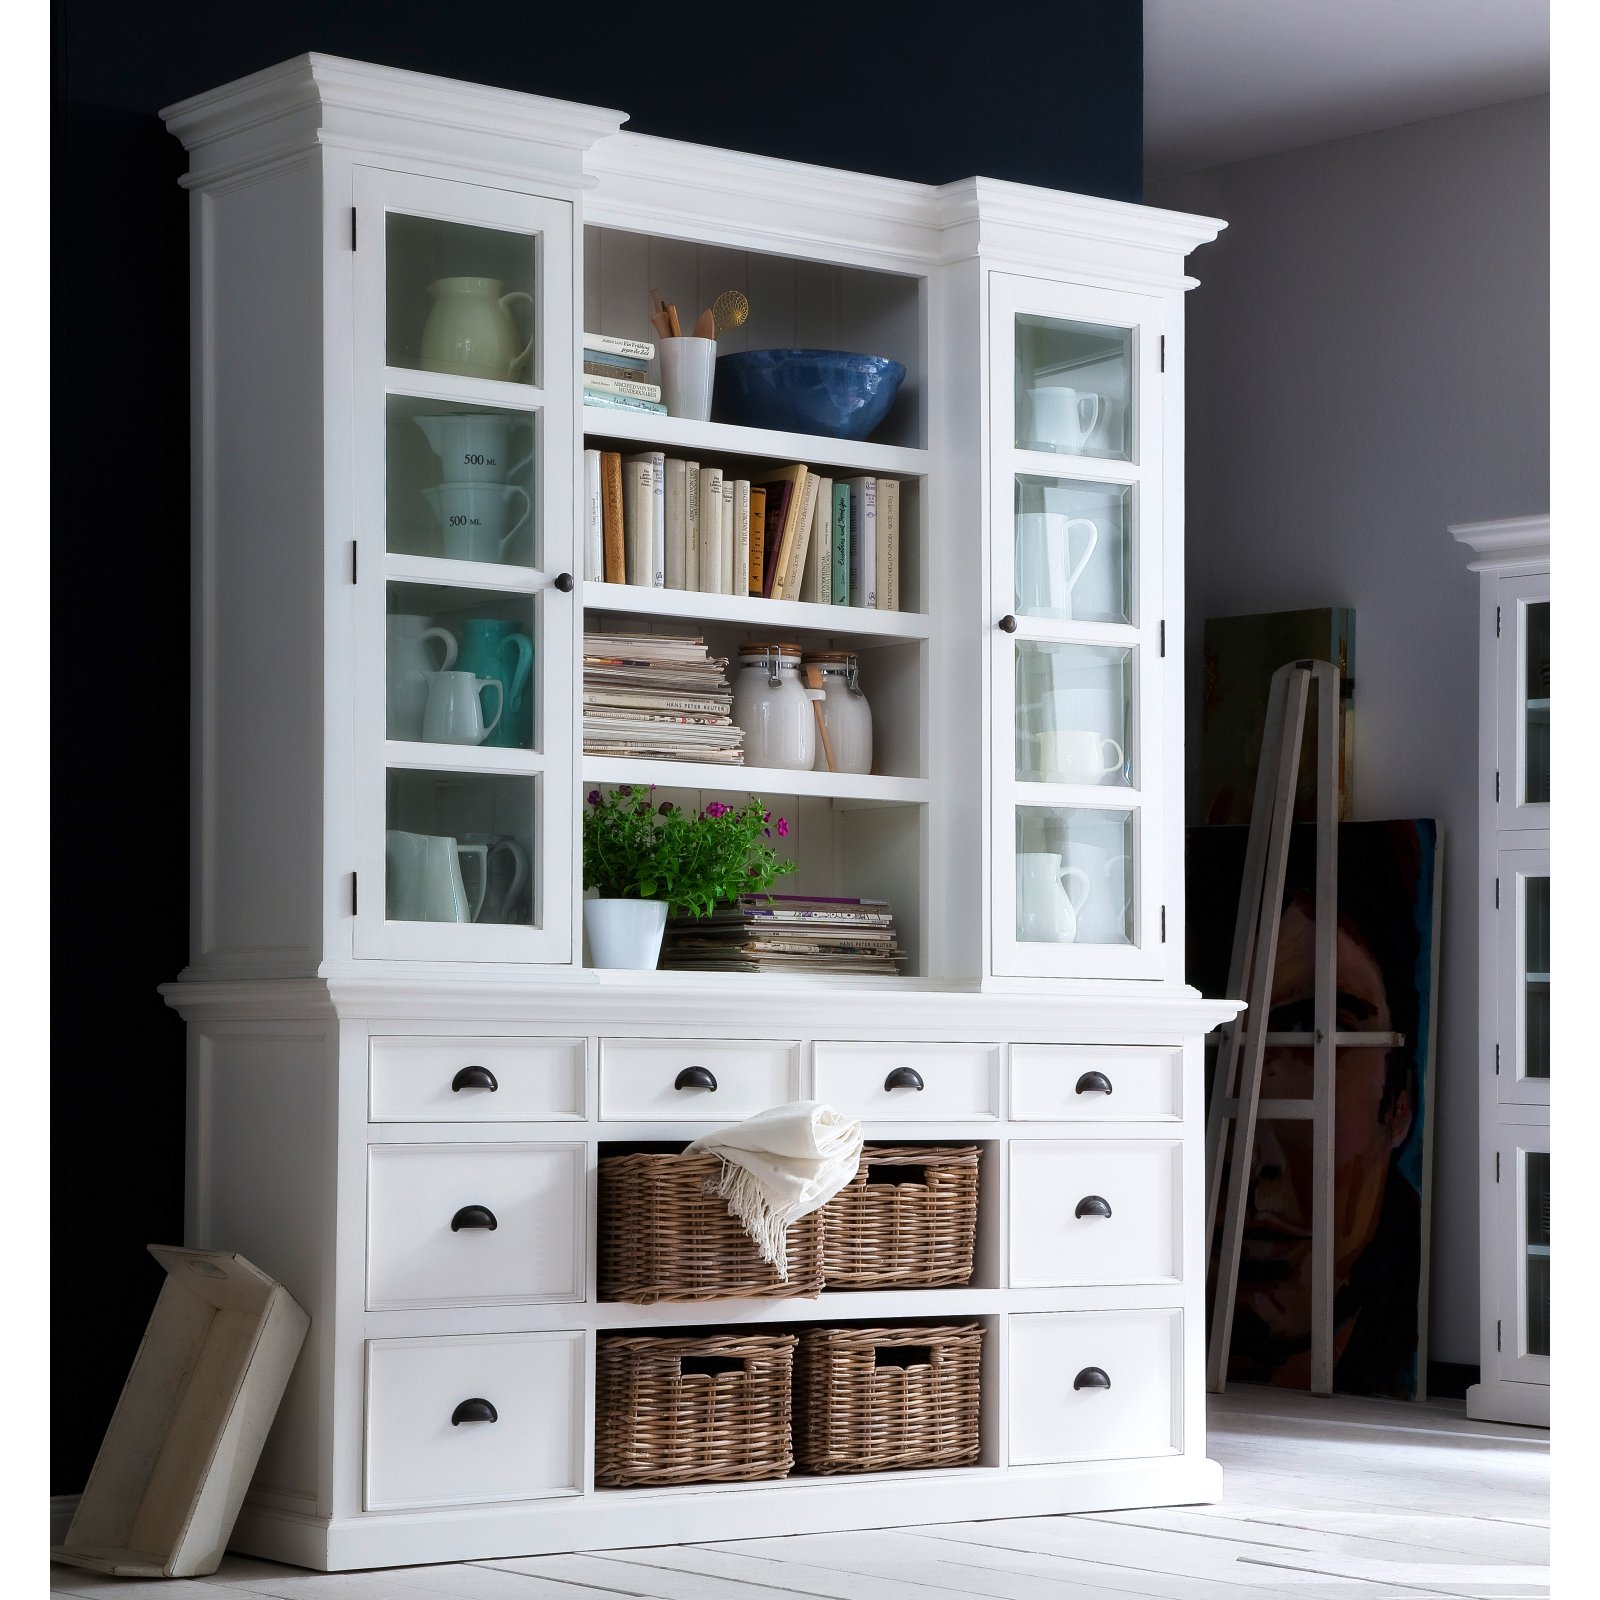 Nova Solo Halifax Library Hutch with Basket Set